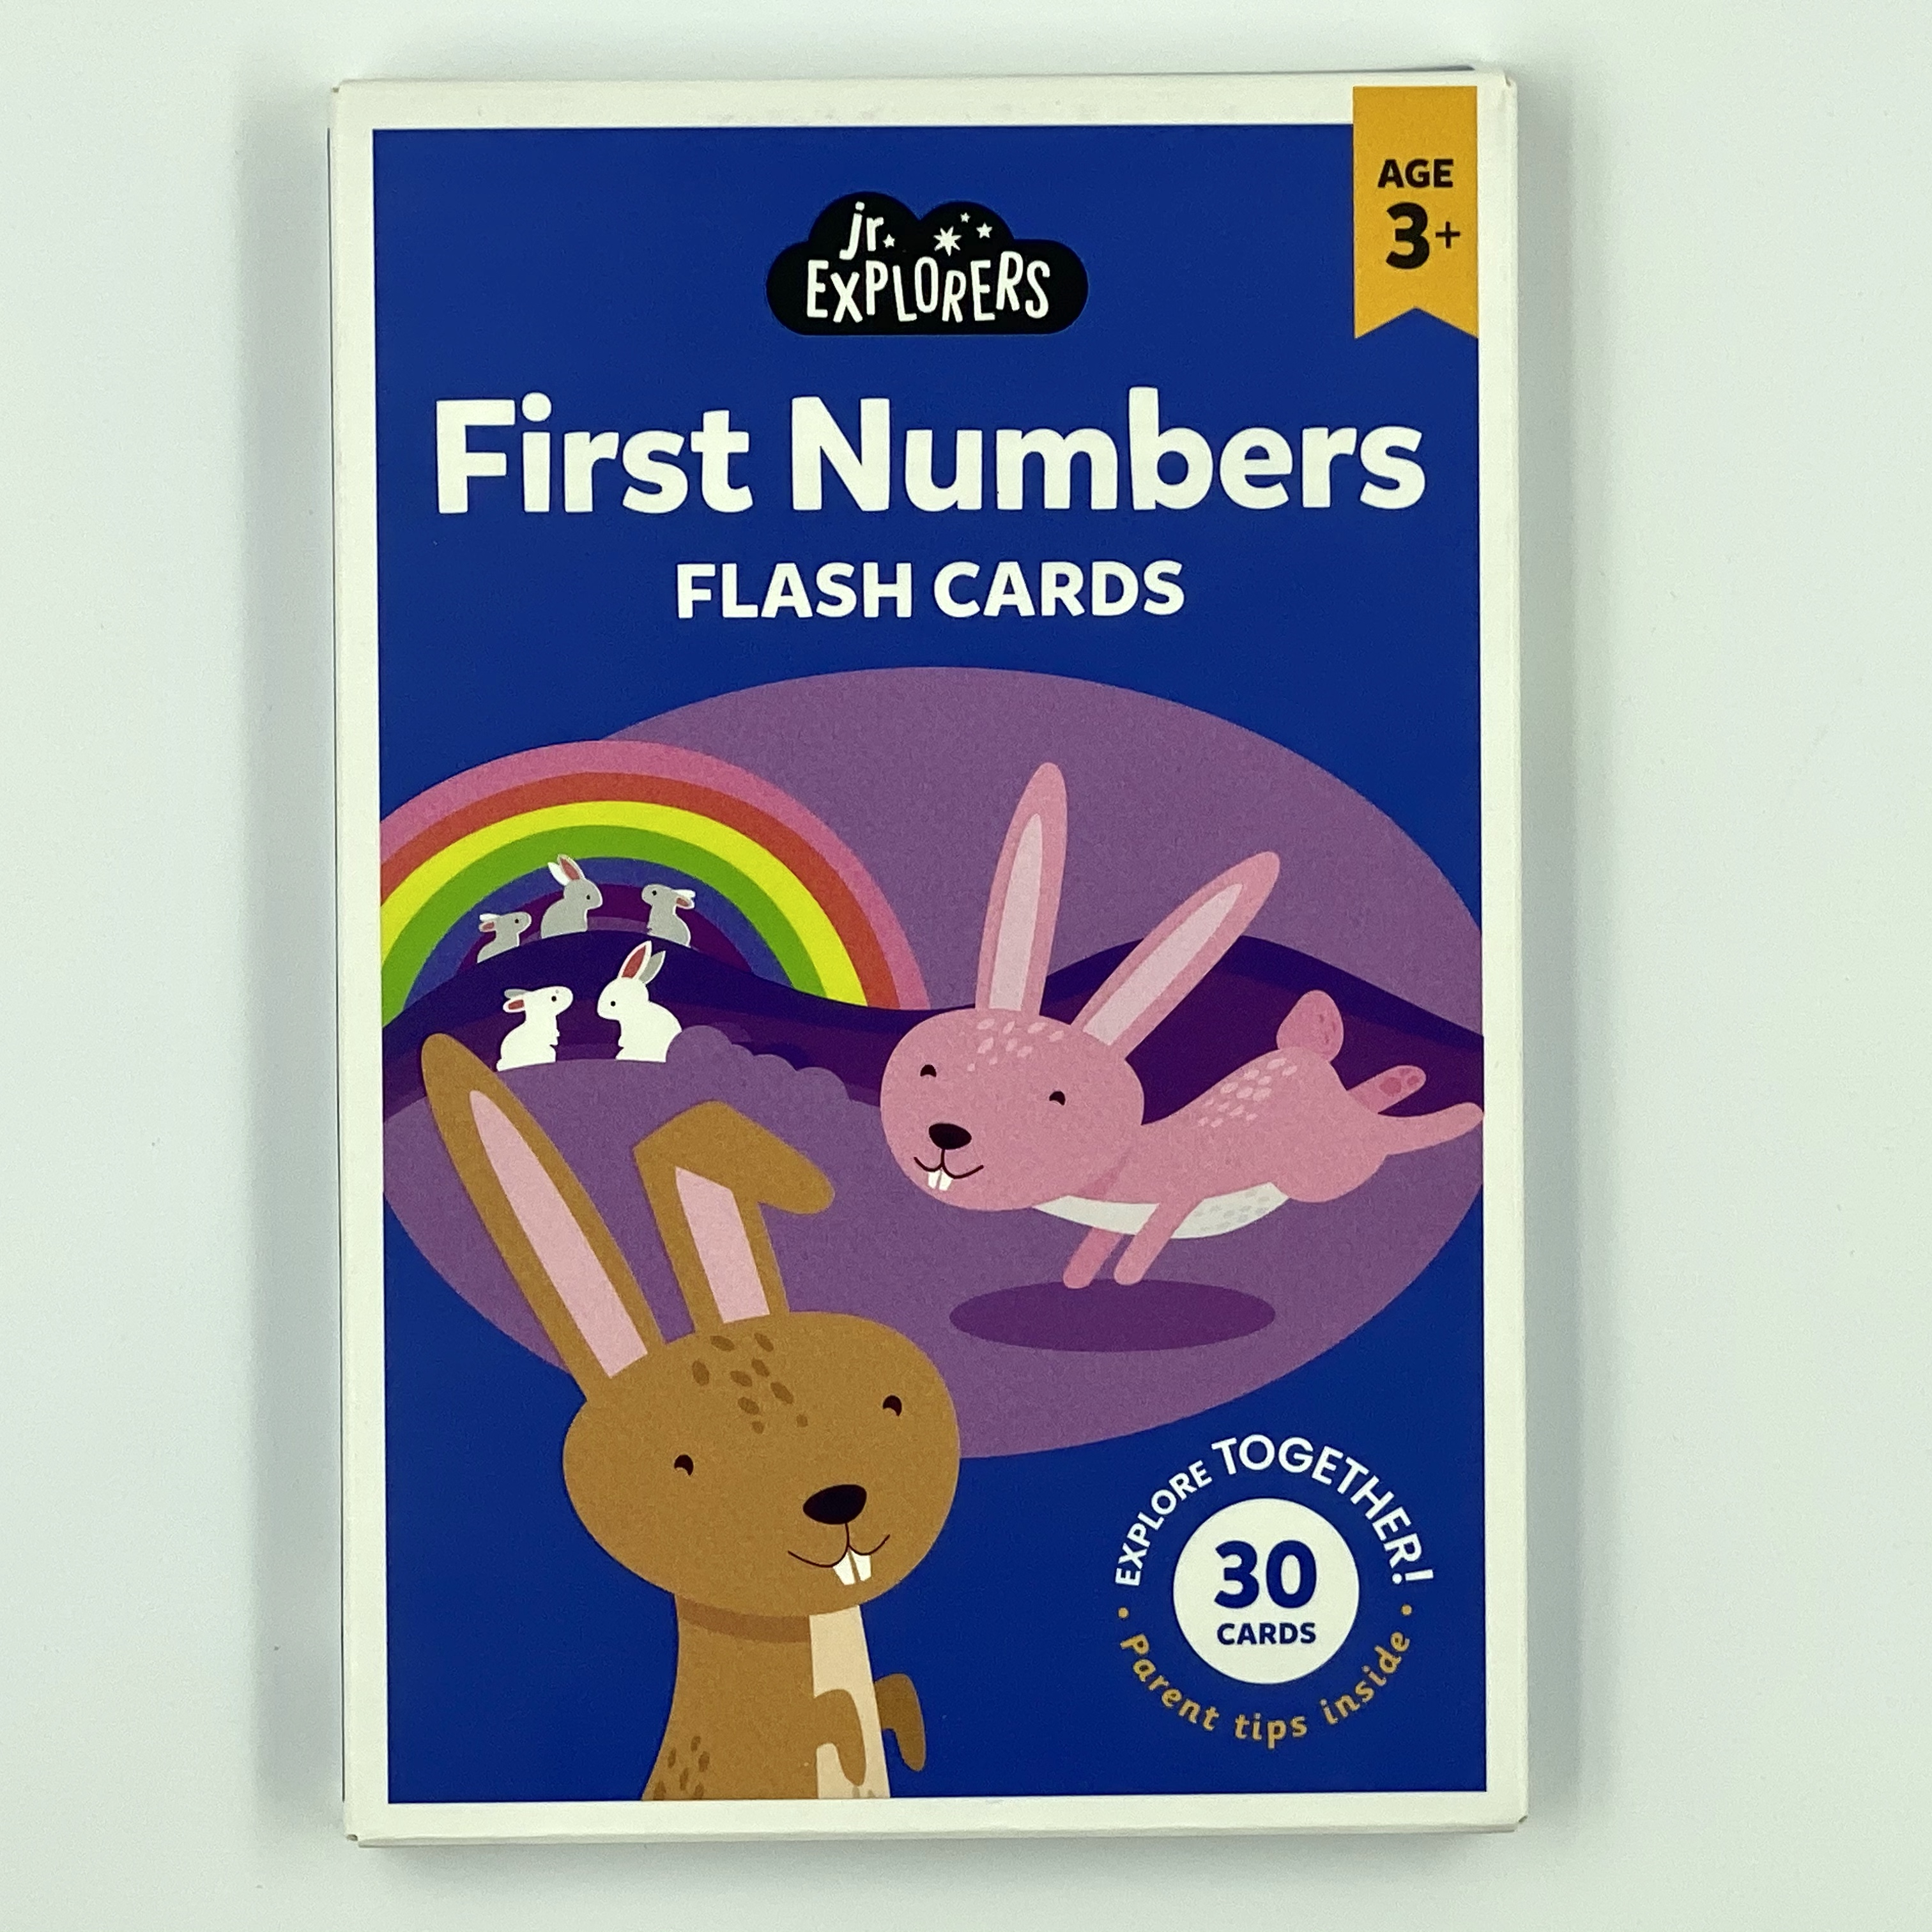 Children's cards, educational cards, digital card printing services